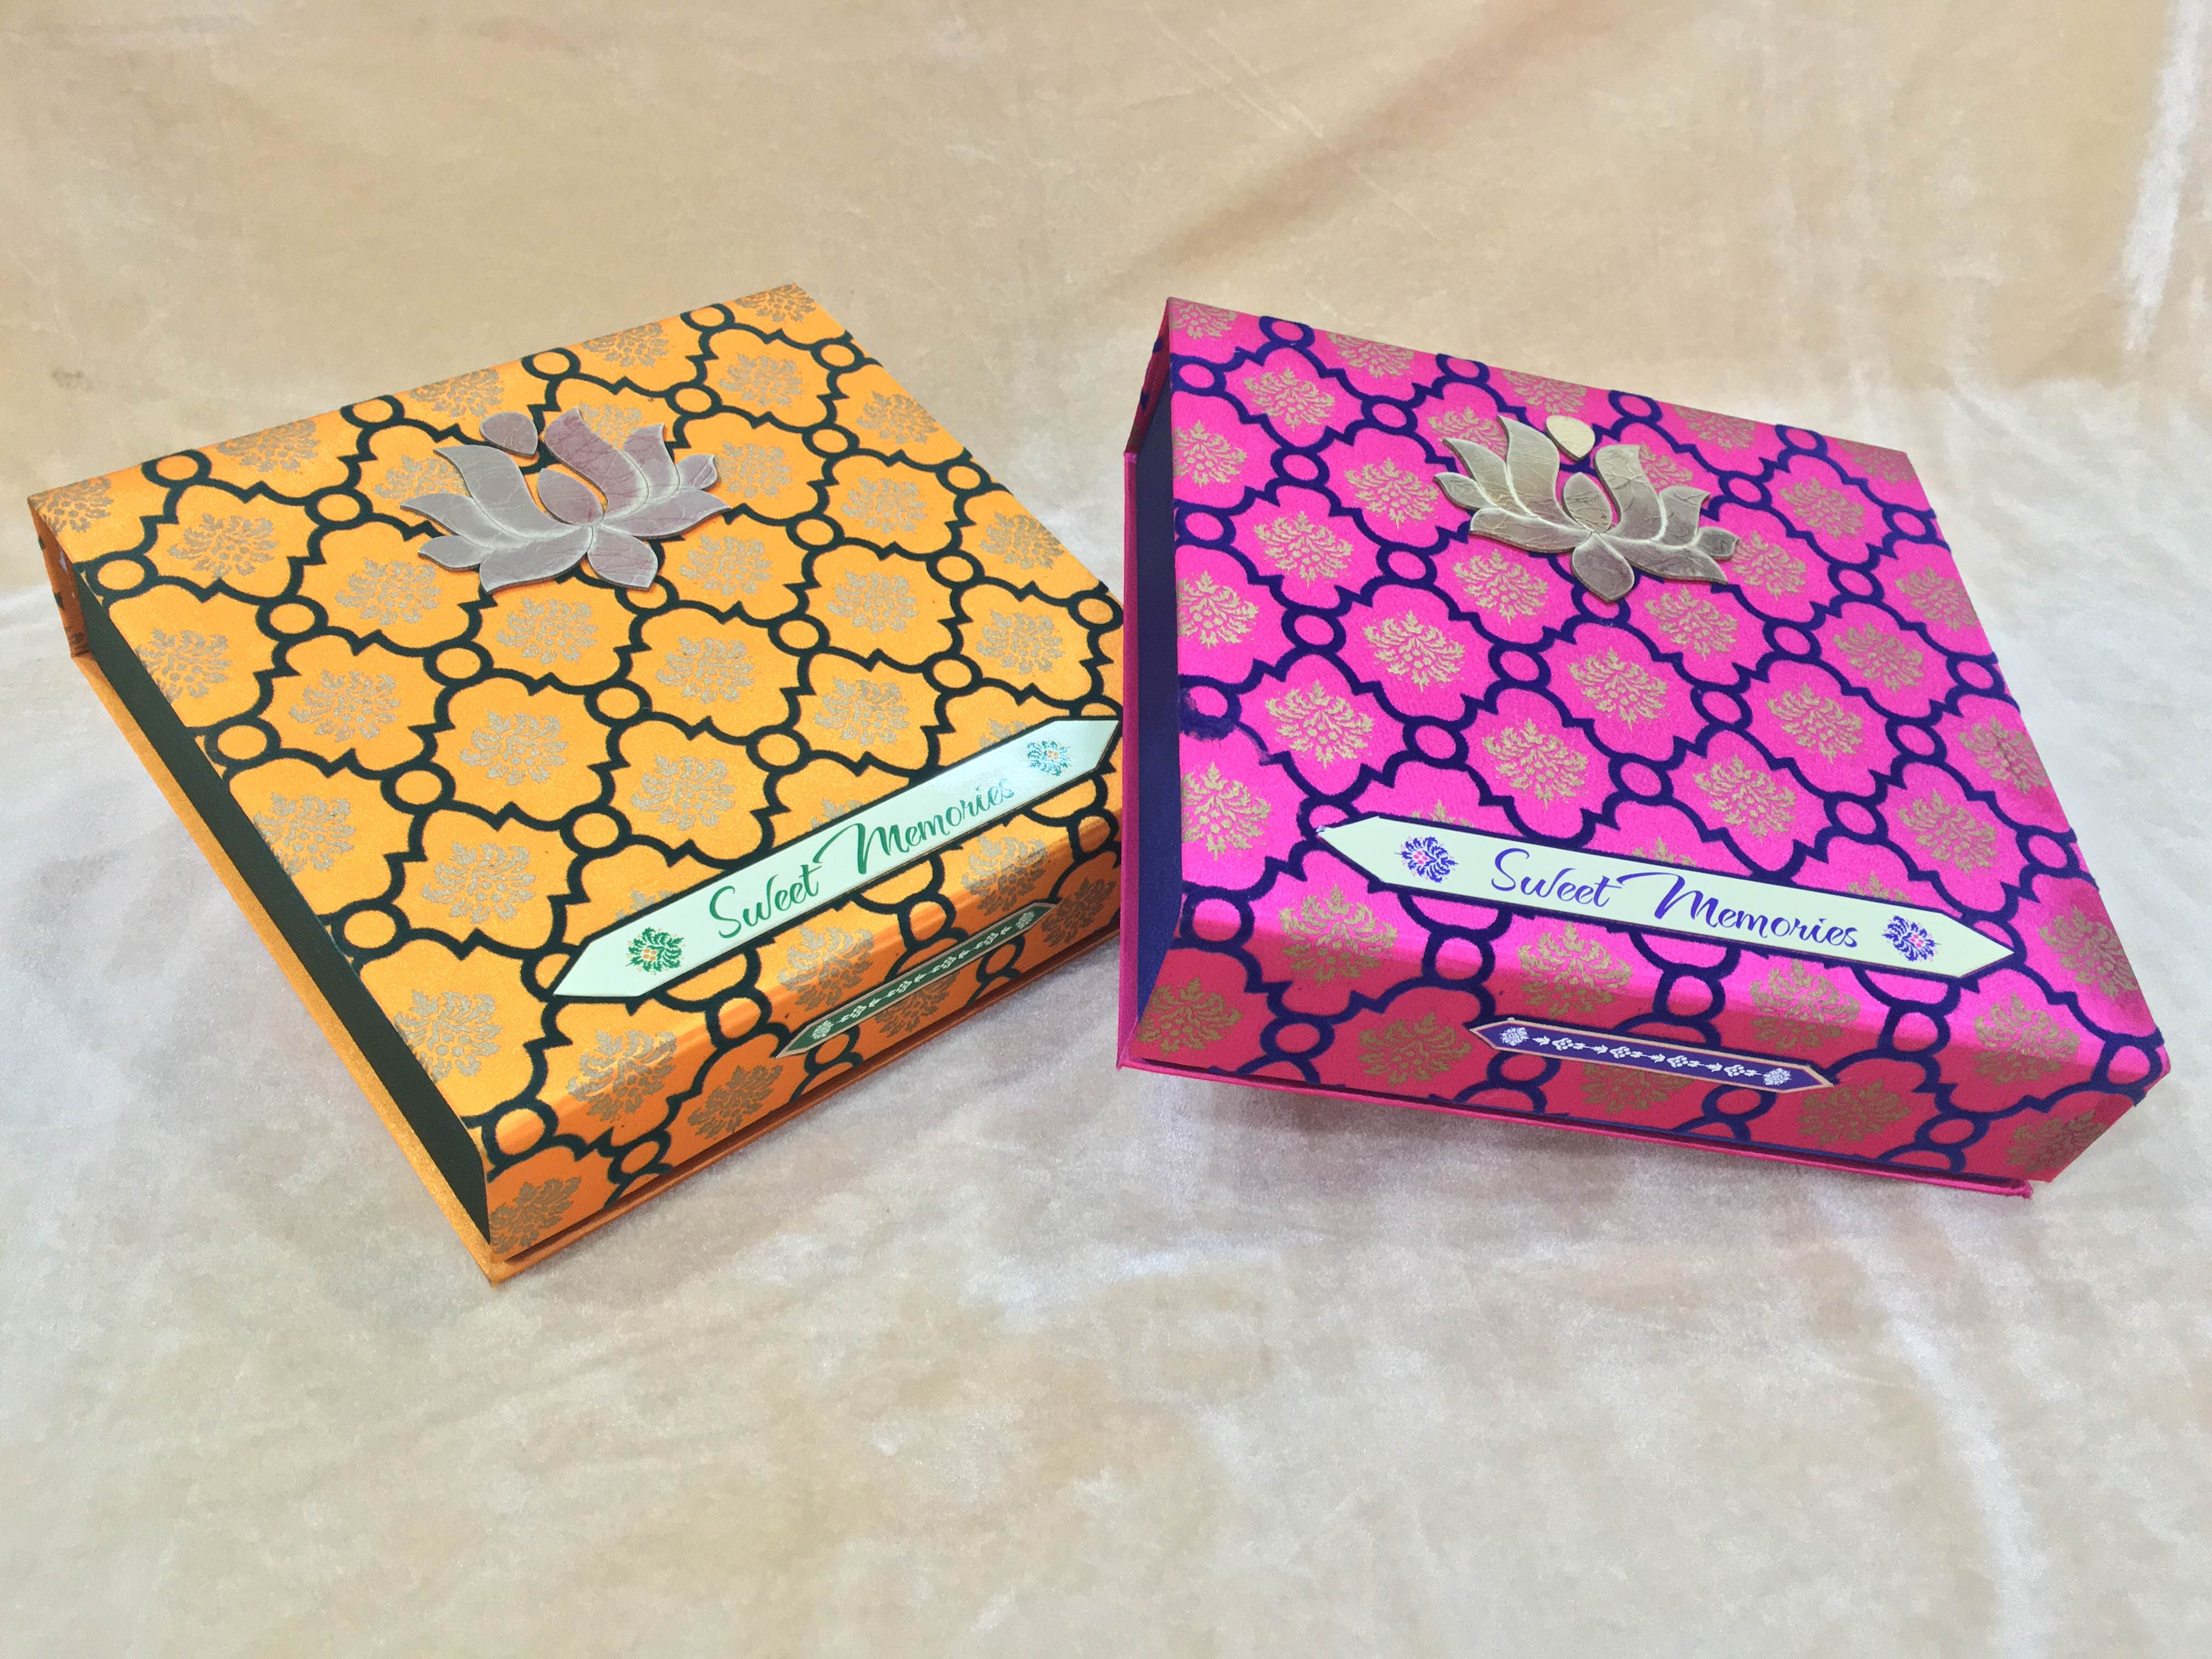 Fancy Dry Fruit Box  We are leading manufacturer, supplier and wholesaler of Fancy Dry Fruit Box in Delhi